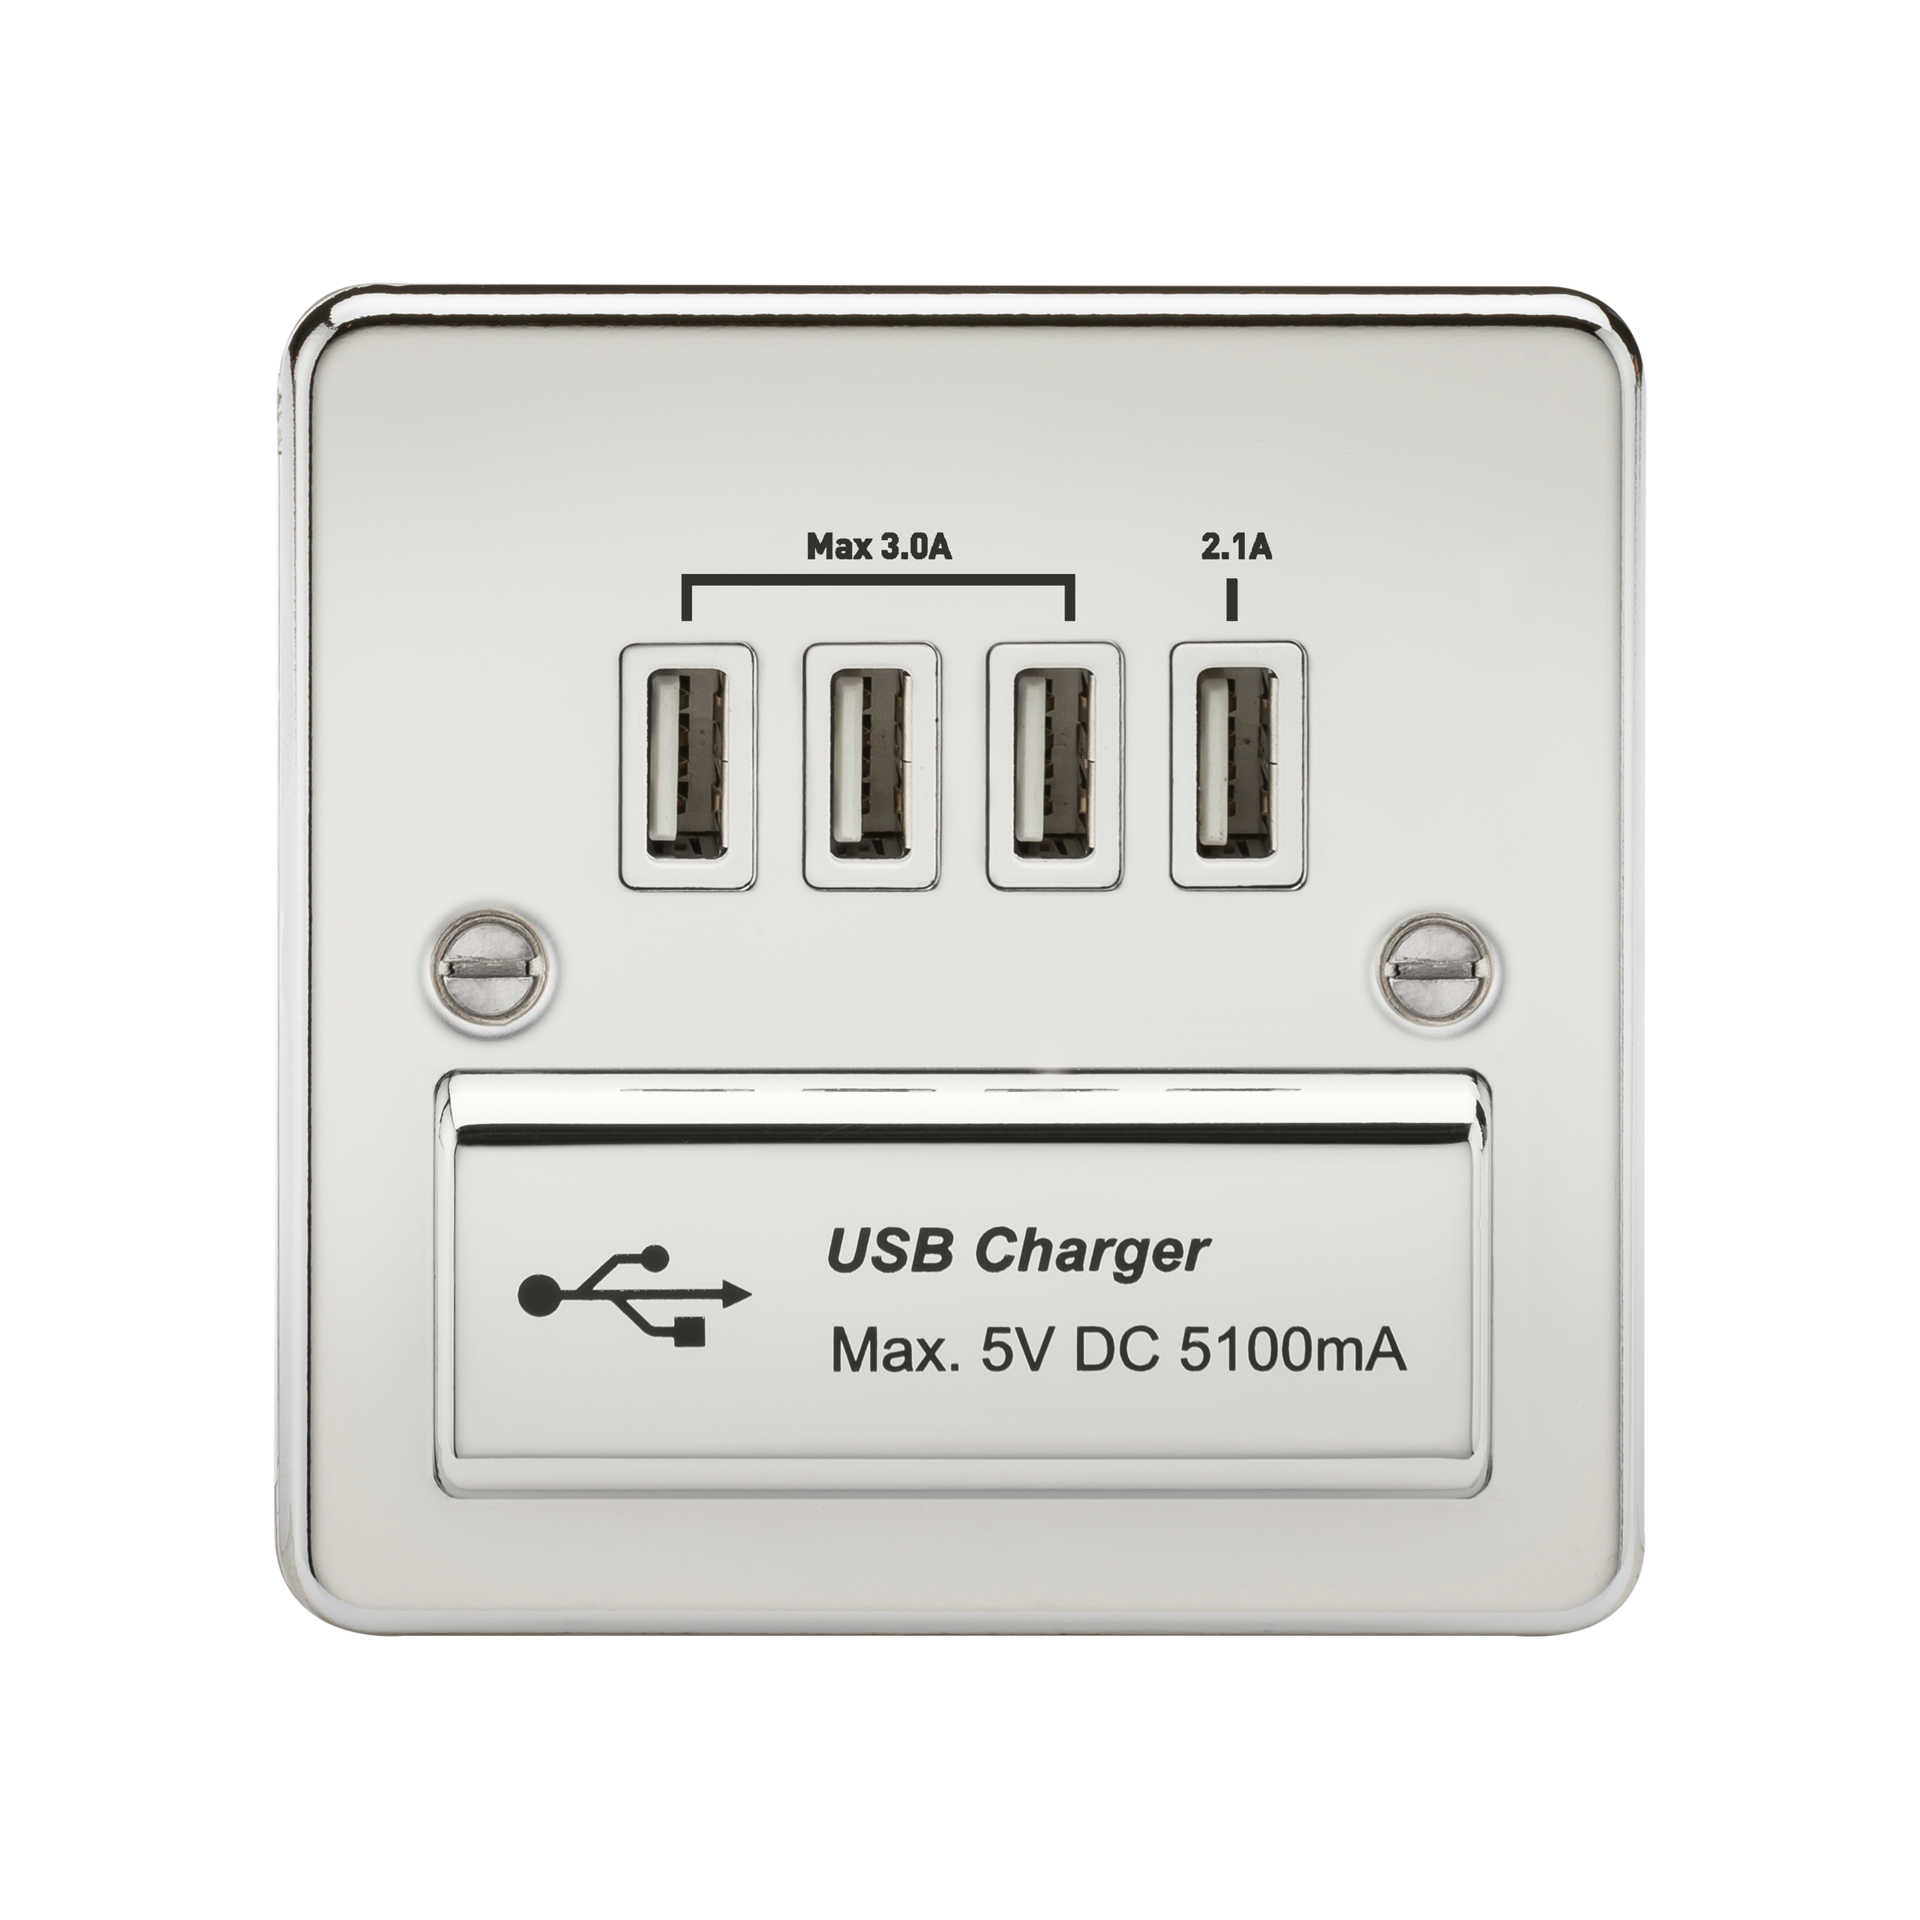 FLAT PLATE 1G QUAD USB CHARGER OUTLET 5V DC 5.1A - POLISHED CHROME WITH WHITE INSERT